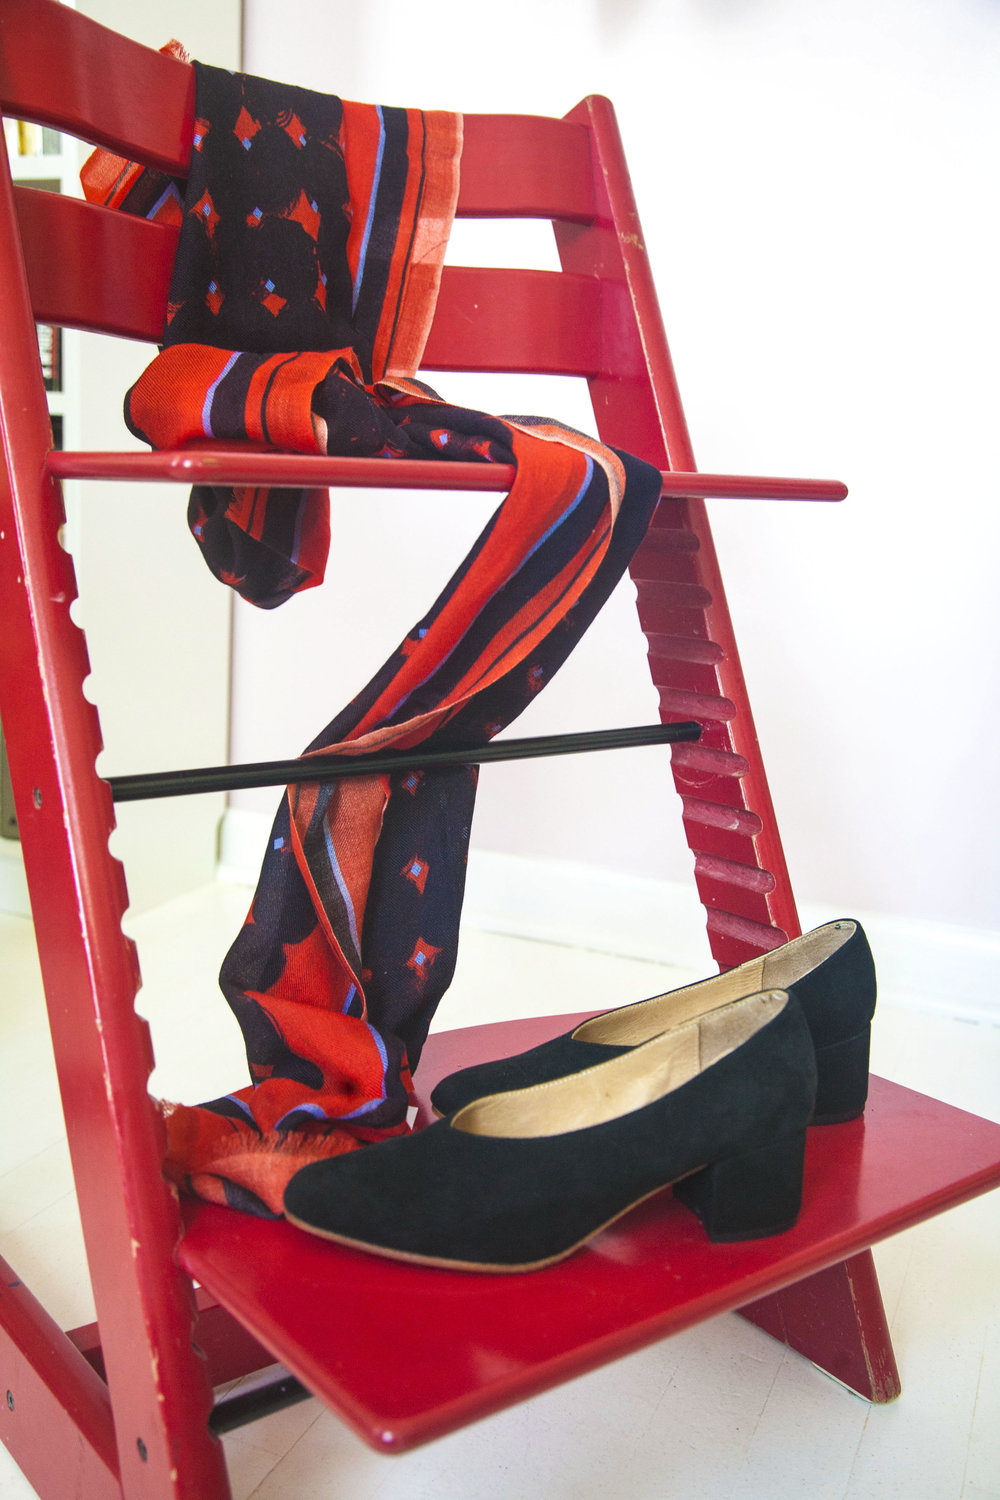 Belu Pump Styled with Red Chair and Scarf.jpg